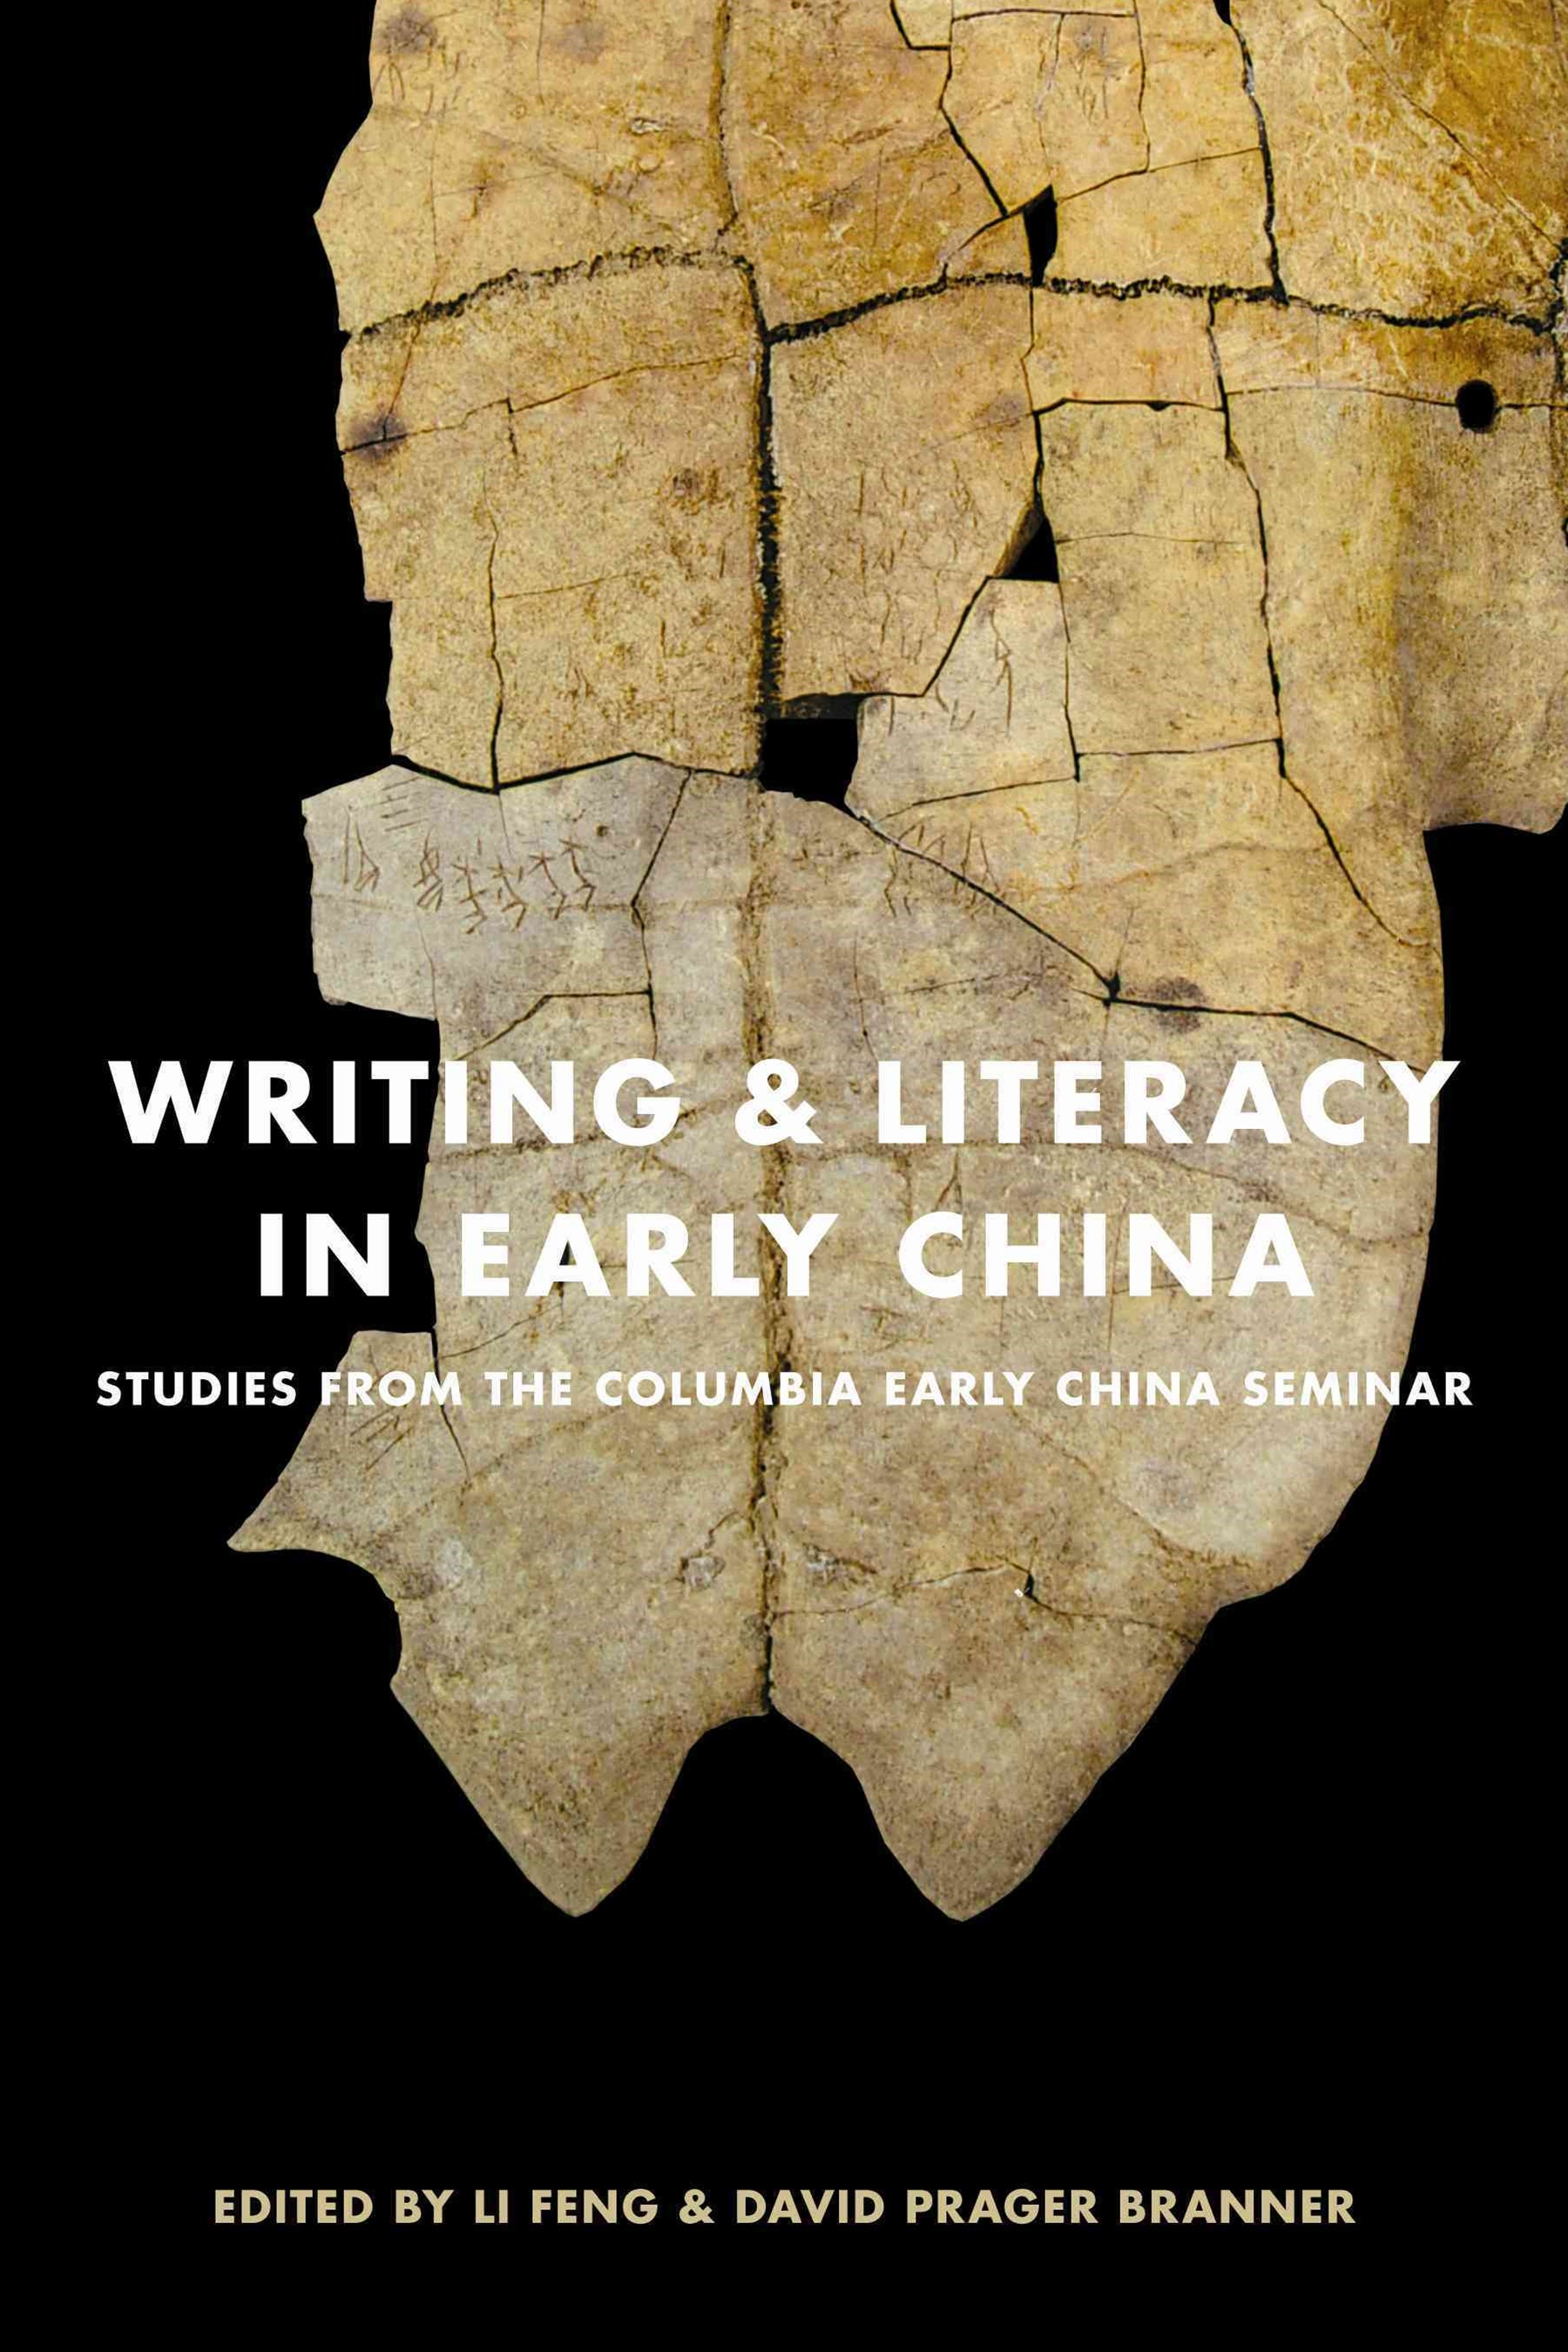 Writing and Literacy in Early China